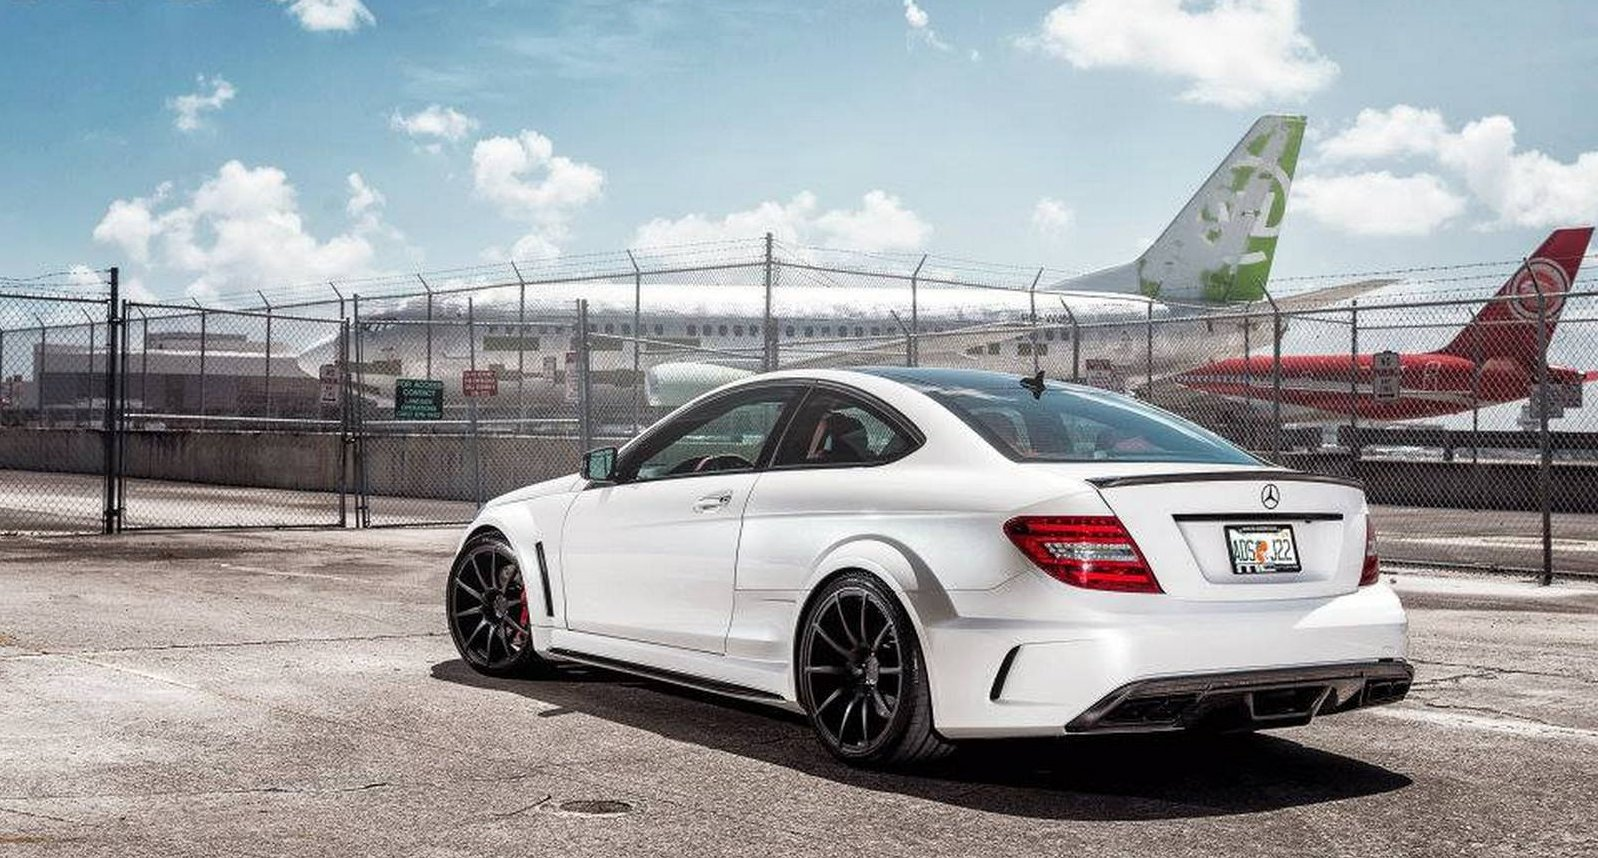 2015 mercedes benz c63 amg wallpaper picture size 1598x858 posted by